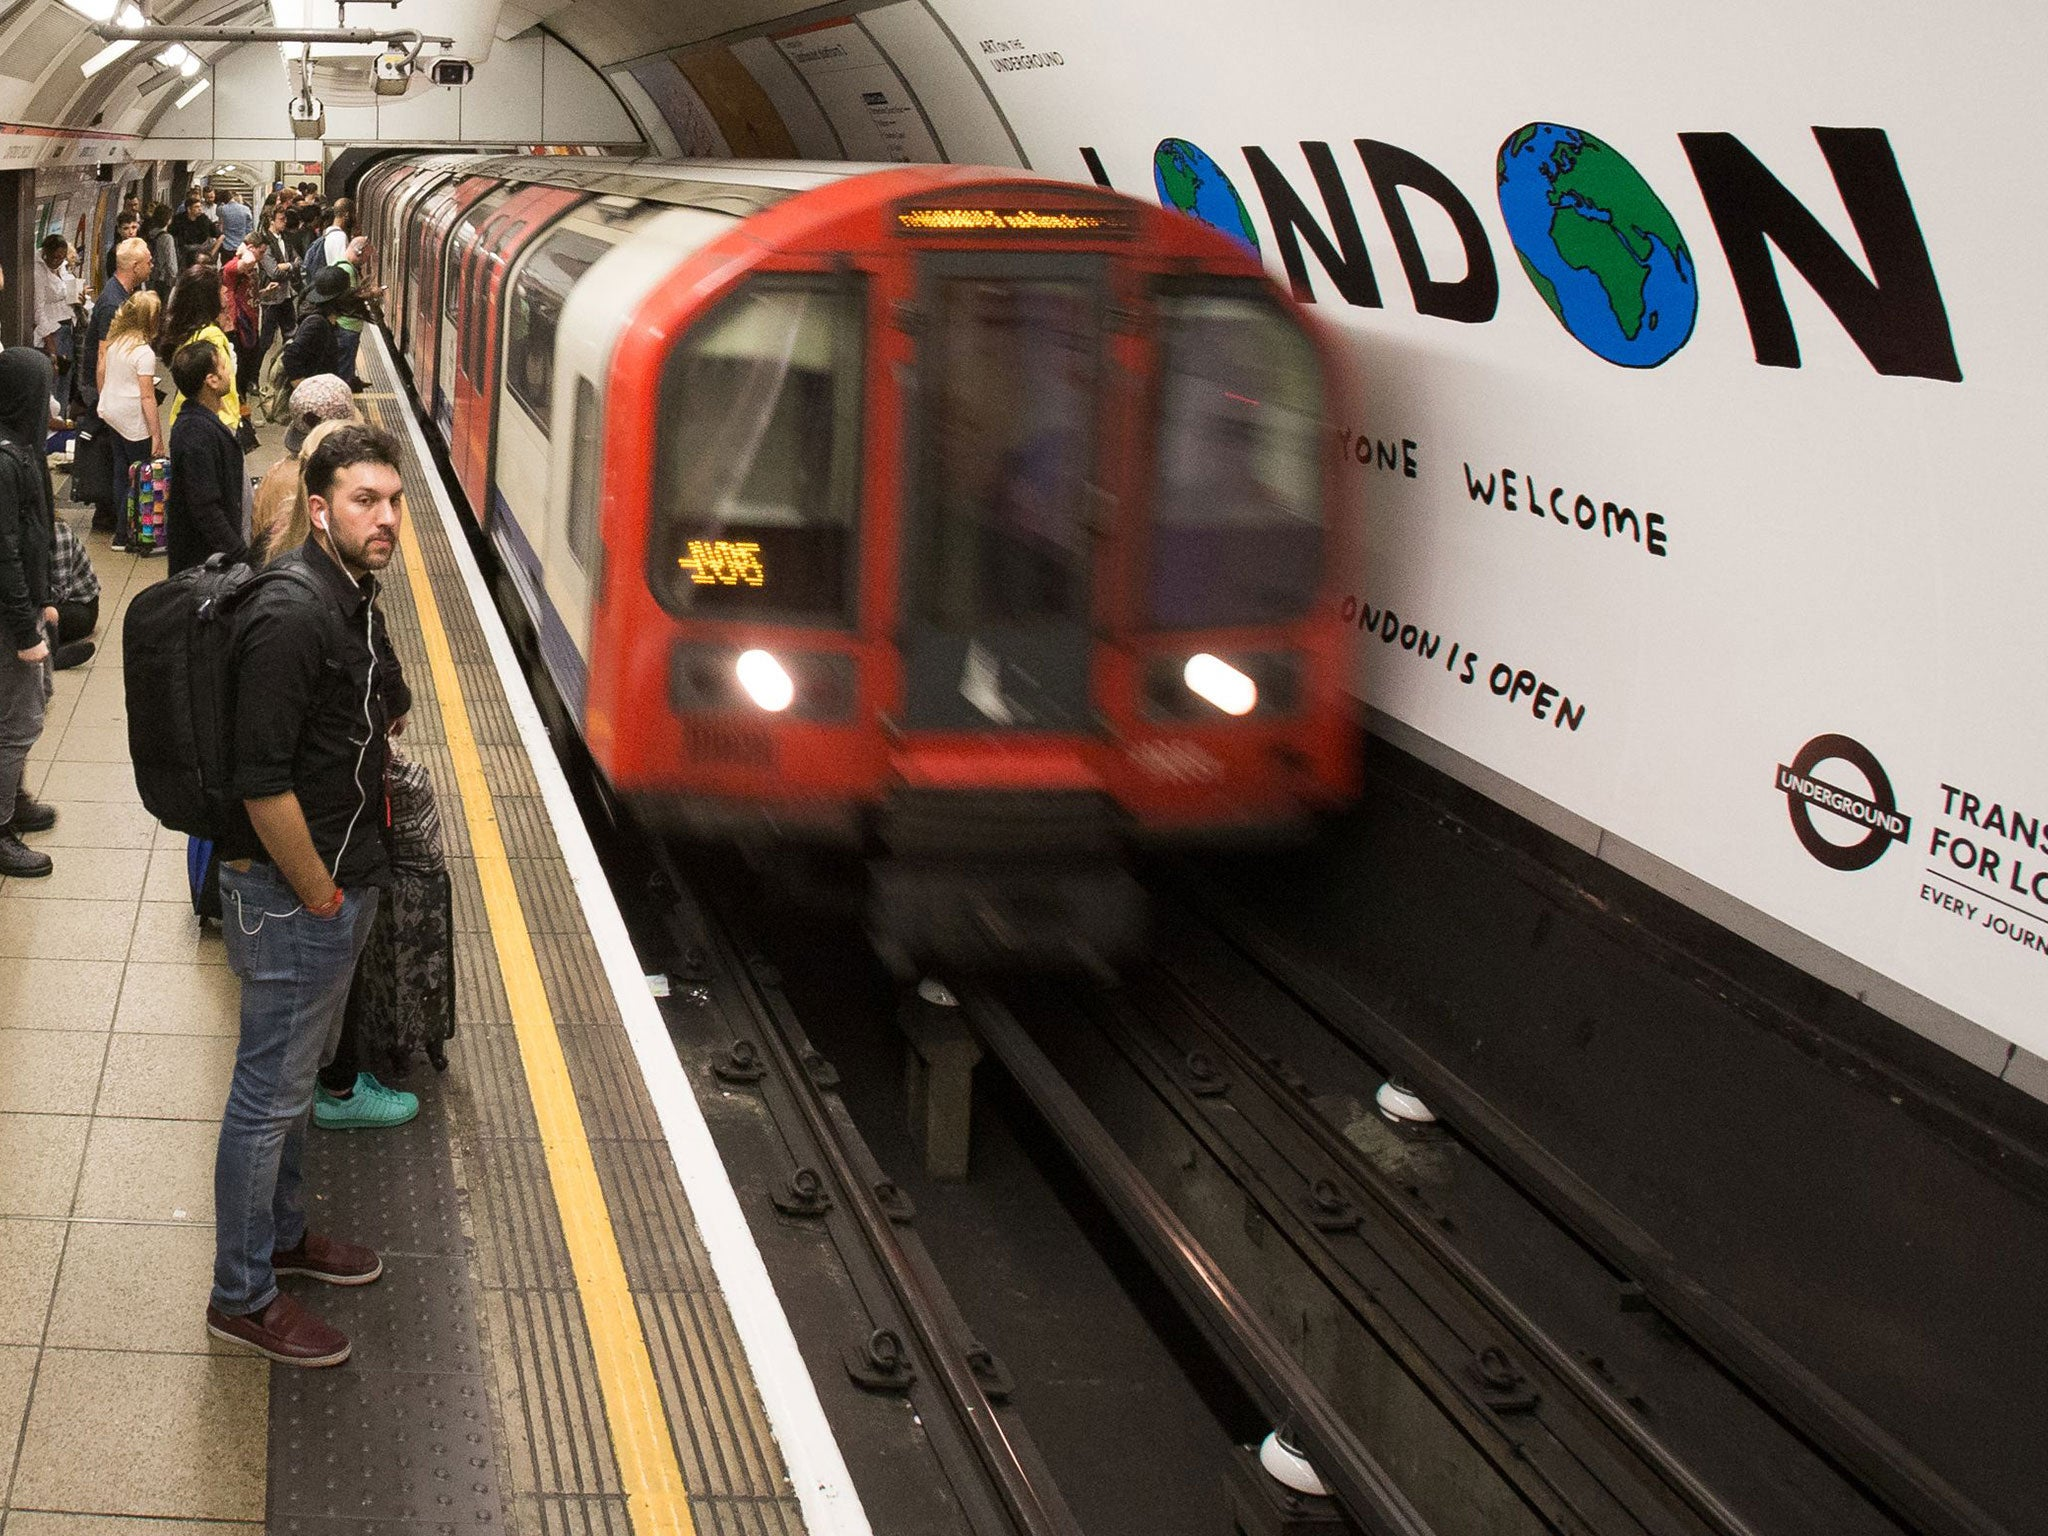 'Tube dust': London launches investigation into potentially dangerous substances detected on Underground